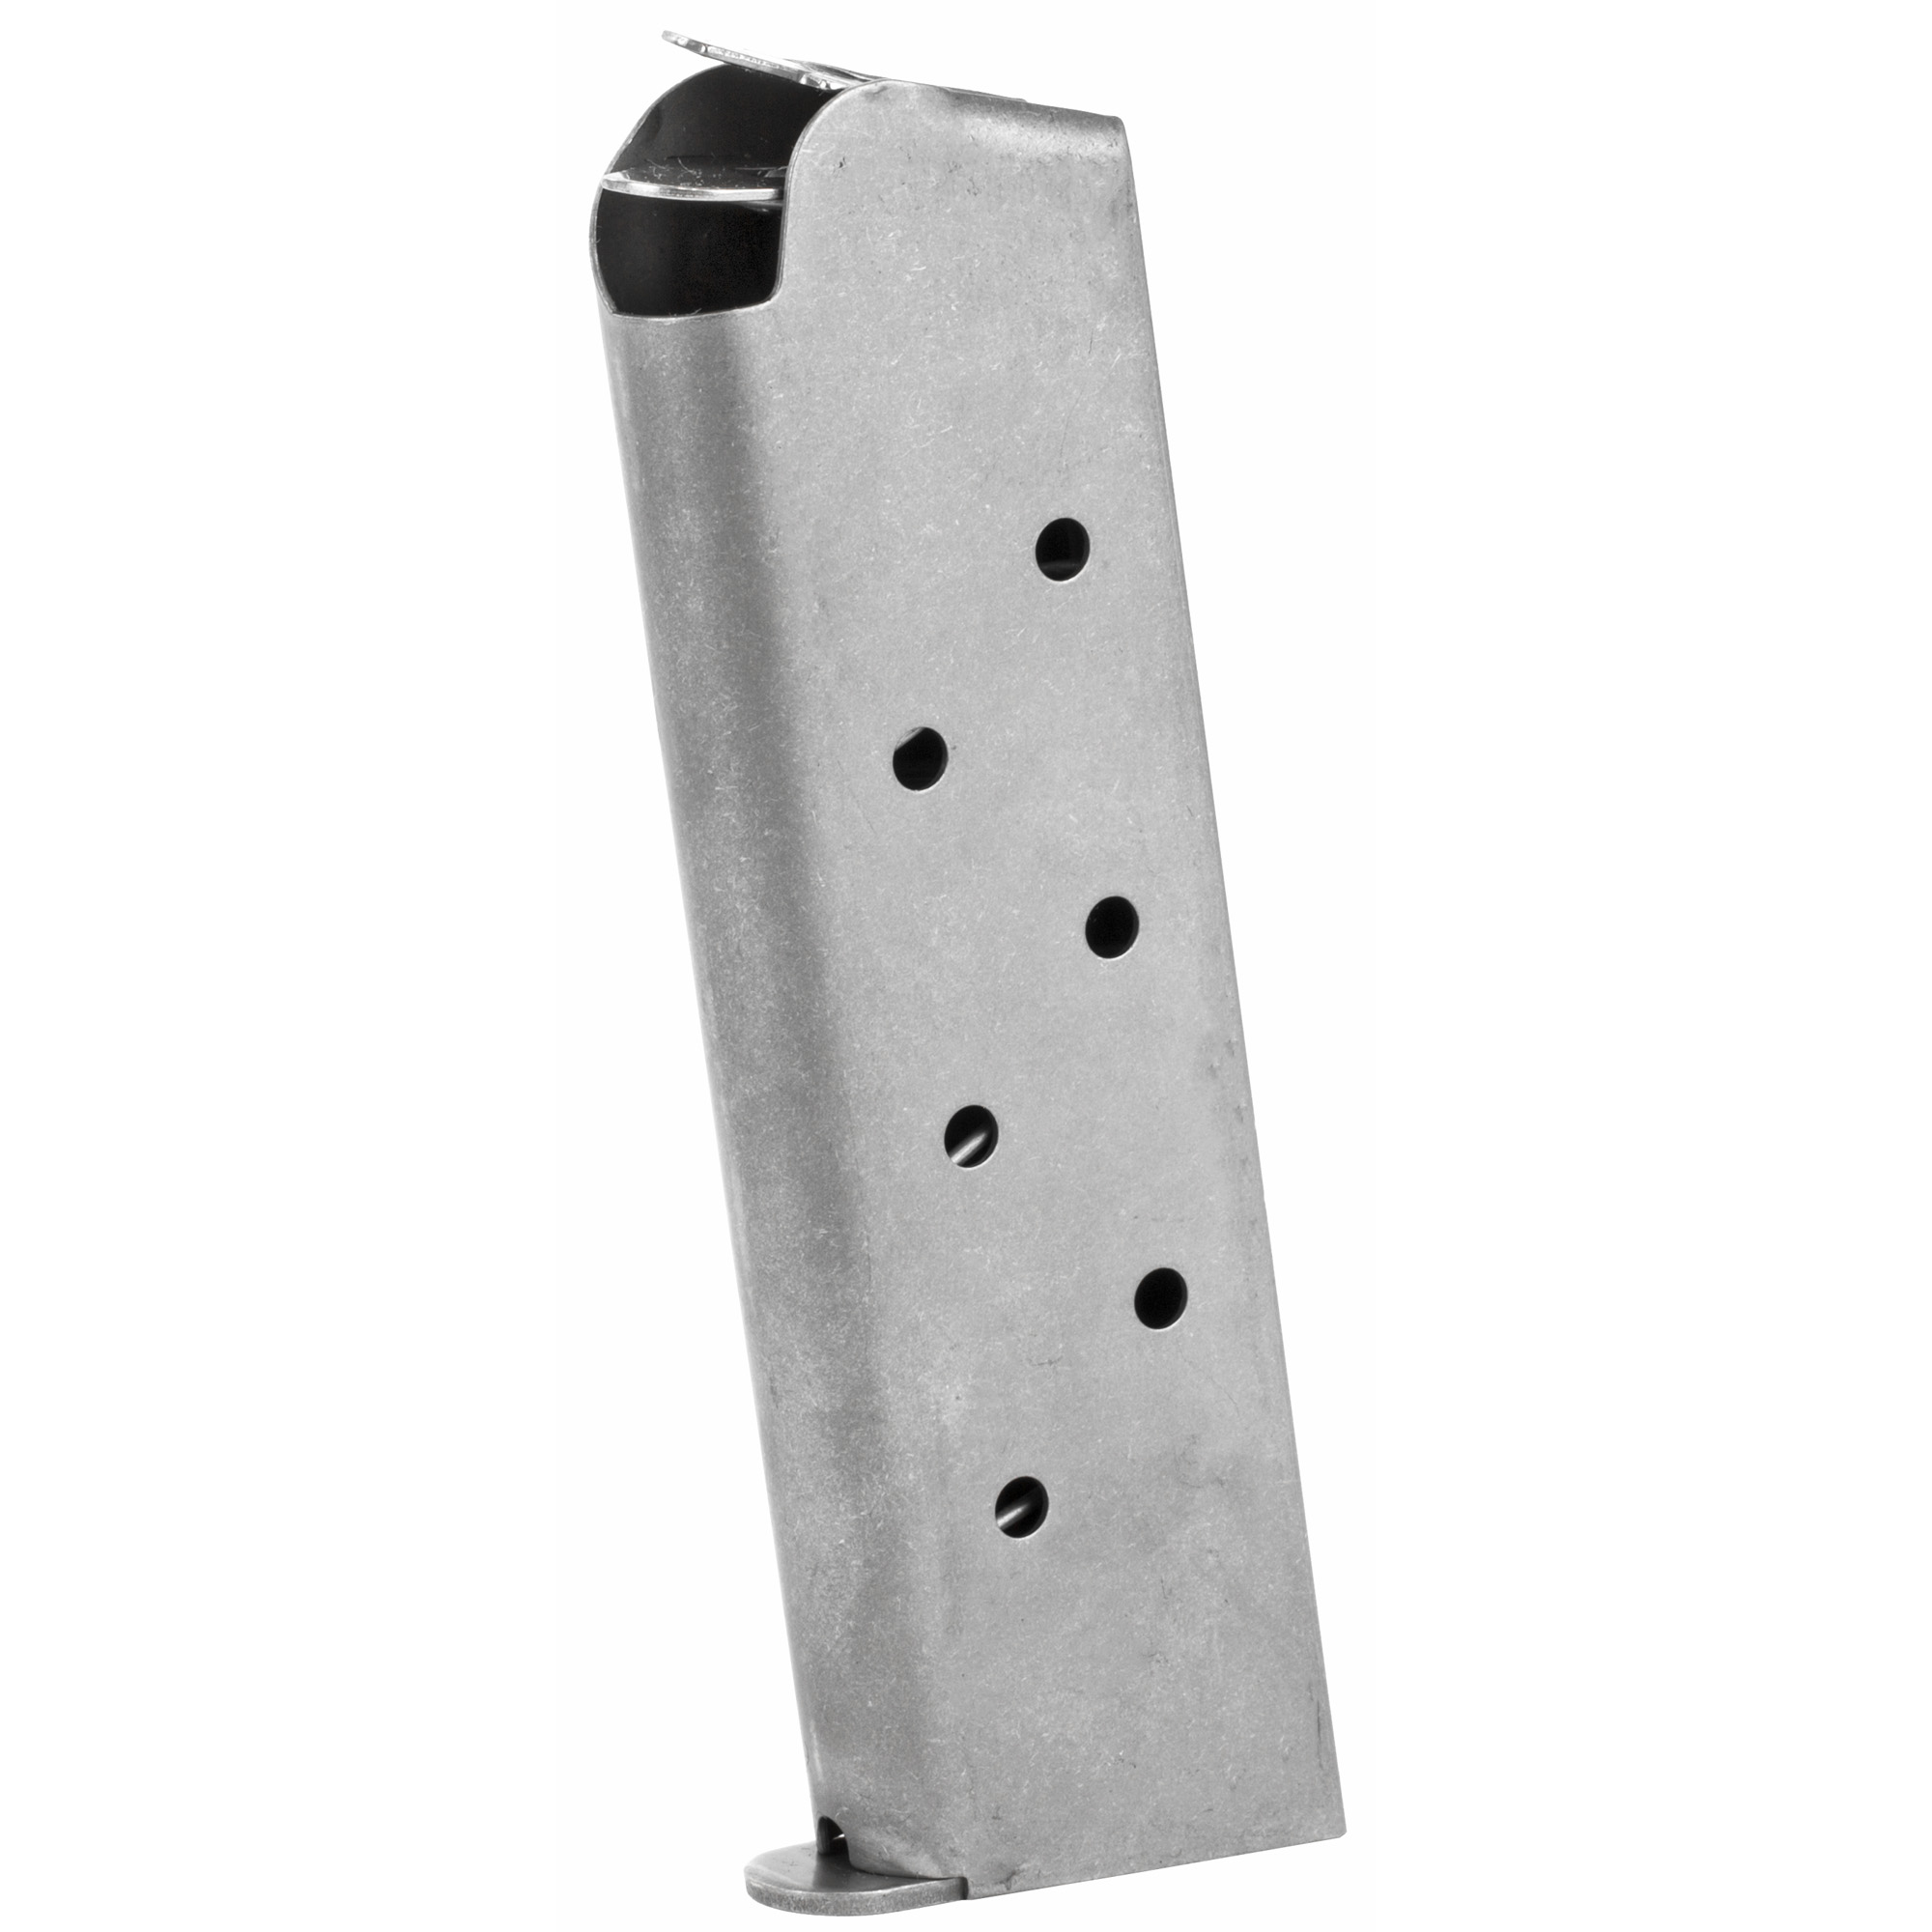 This is a Full-Size 1911 magazine in the traditional flush fit GI-style with all new materials and a follower designed for enhanced capacity (8 Rounds). It features a laser welded stainless steel magazine tube with welded base plate and is drilled for an optional polymer base pad (Base Pad and Screws Included).